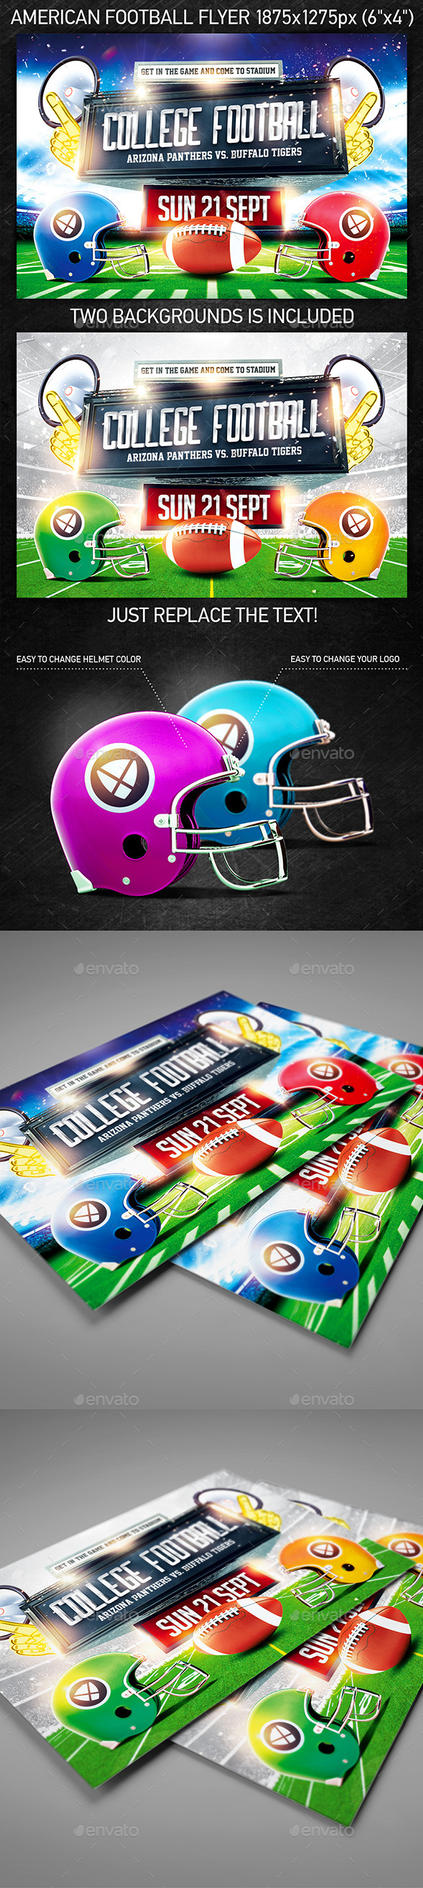 American Football Game Flyer vol.3, PSD Template by 4ustudio